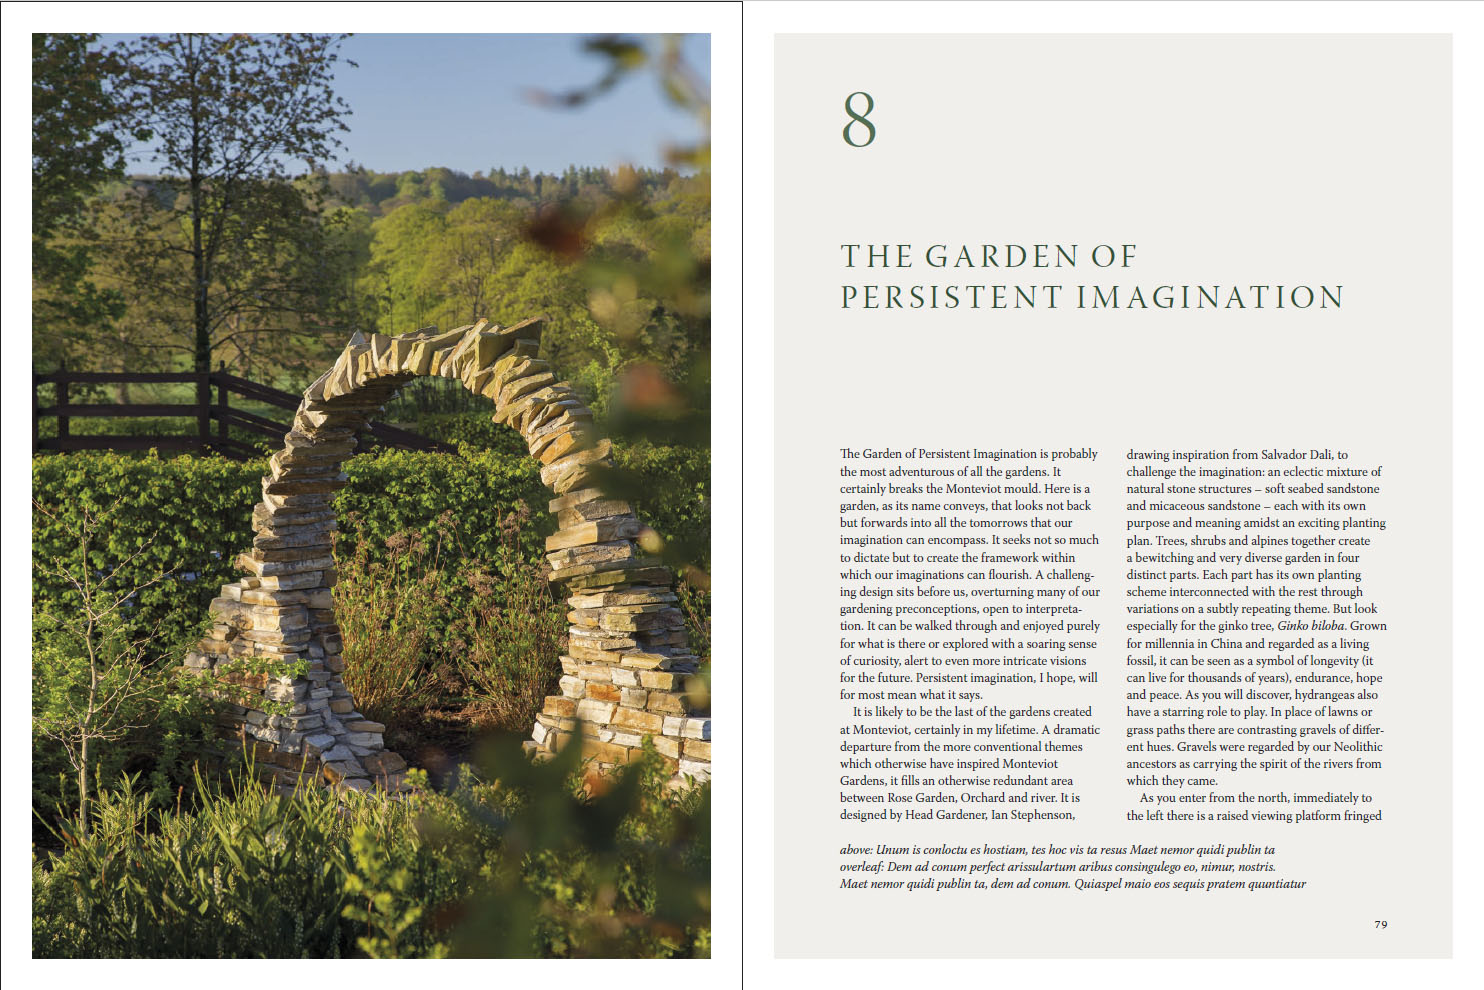 Magical Gardens Of Monteviot P 78 79